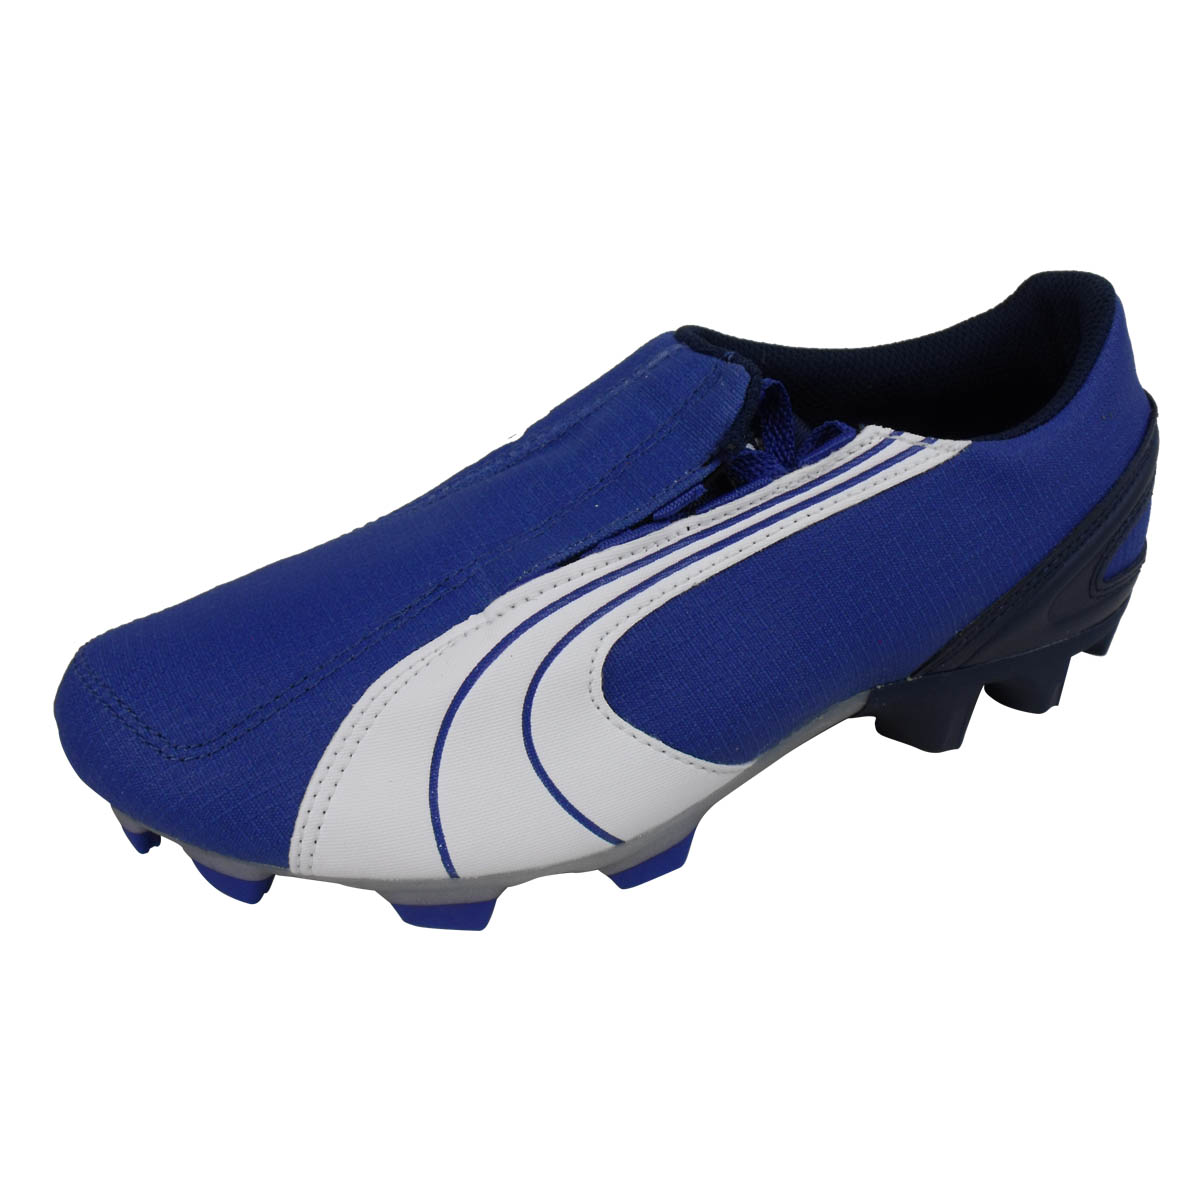 eac2aed24b063f Buy blue puma football boots